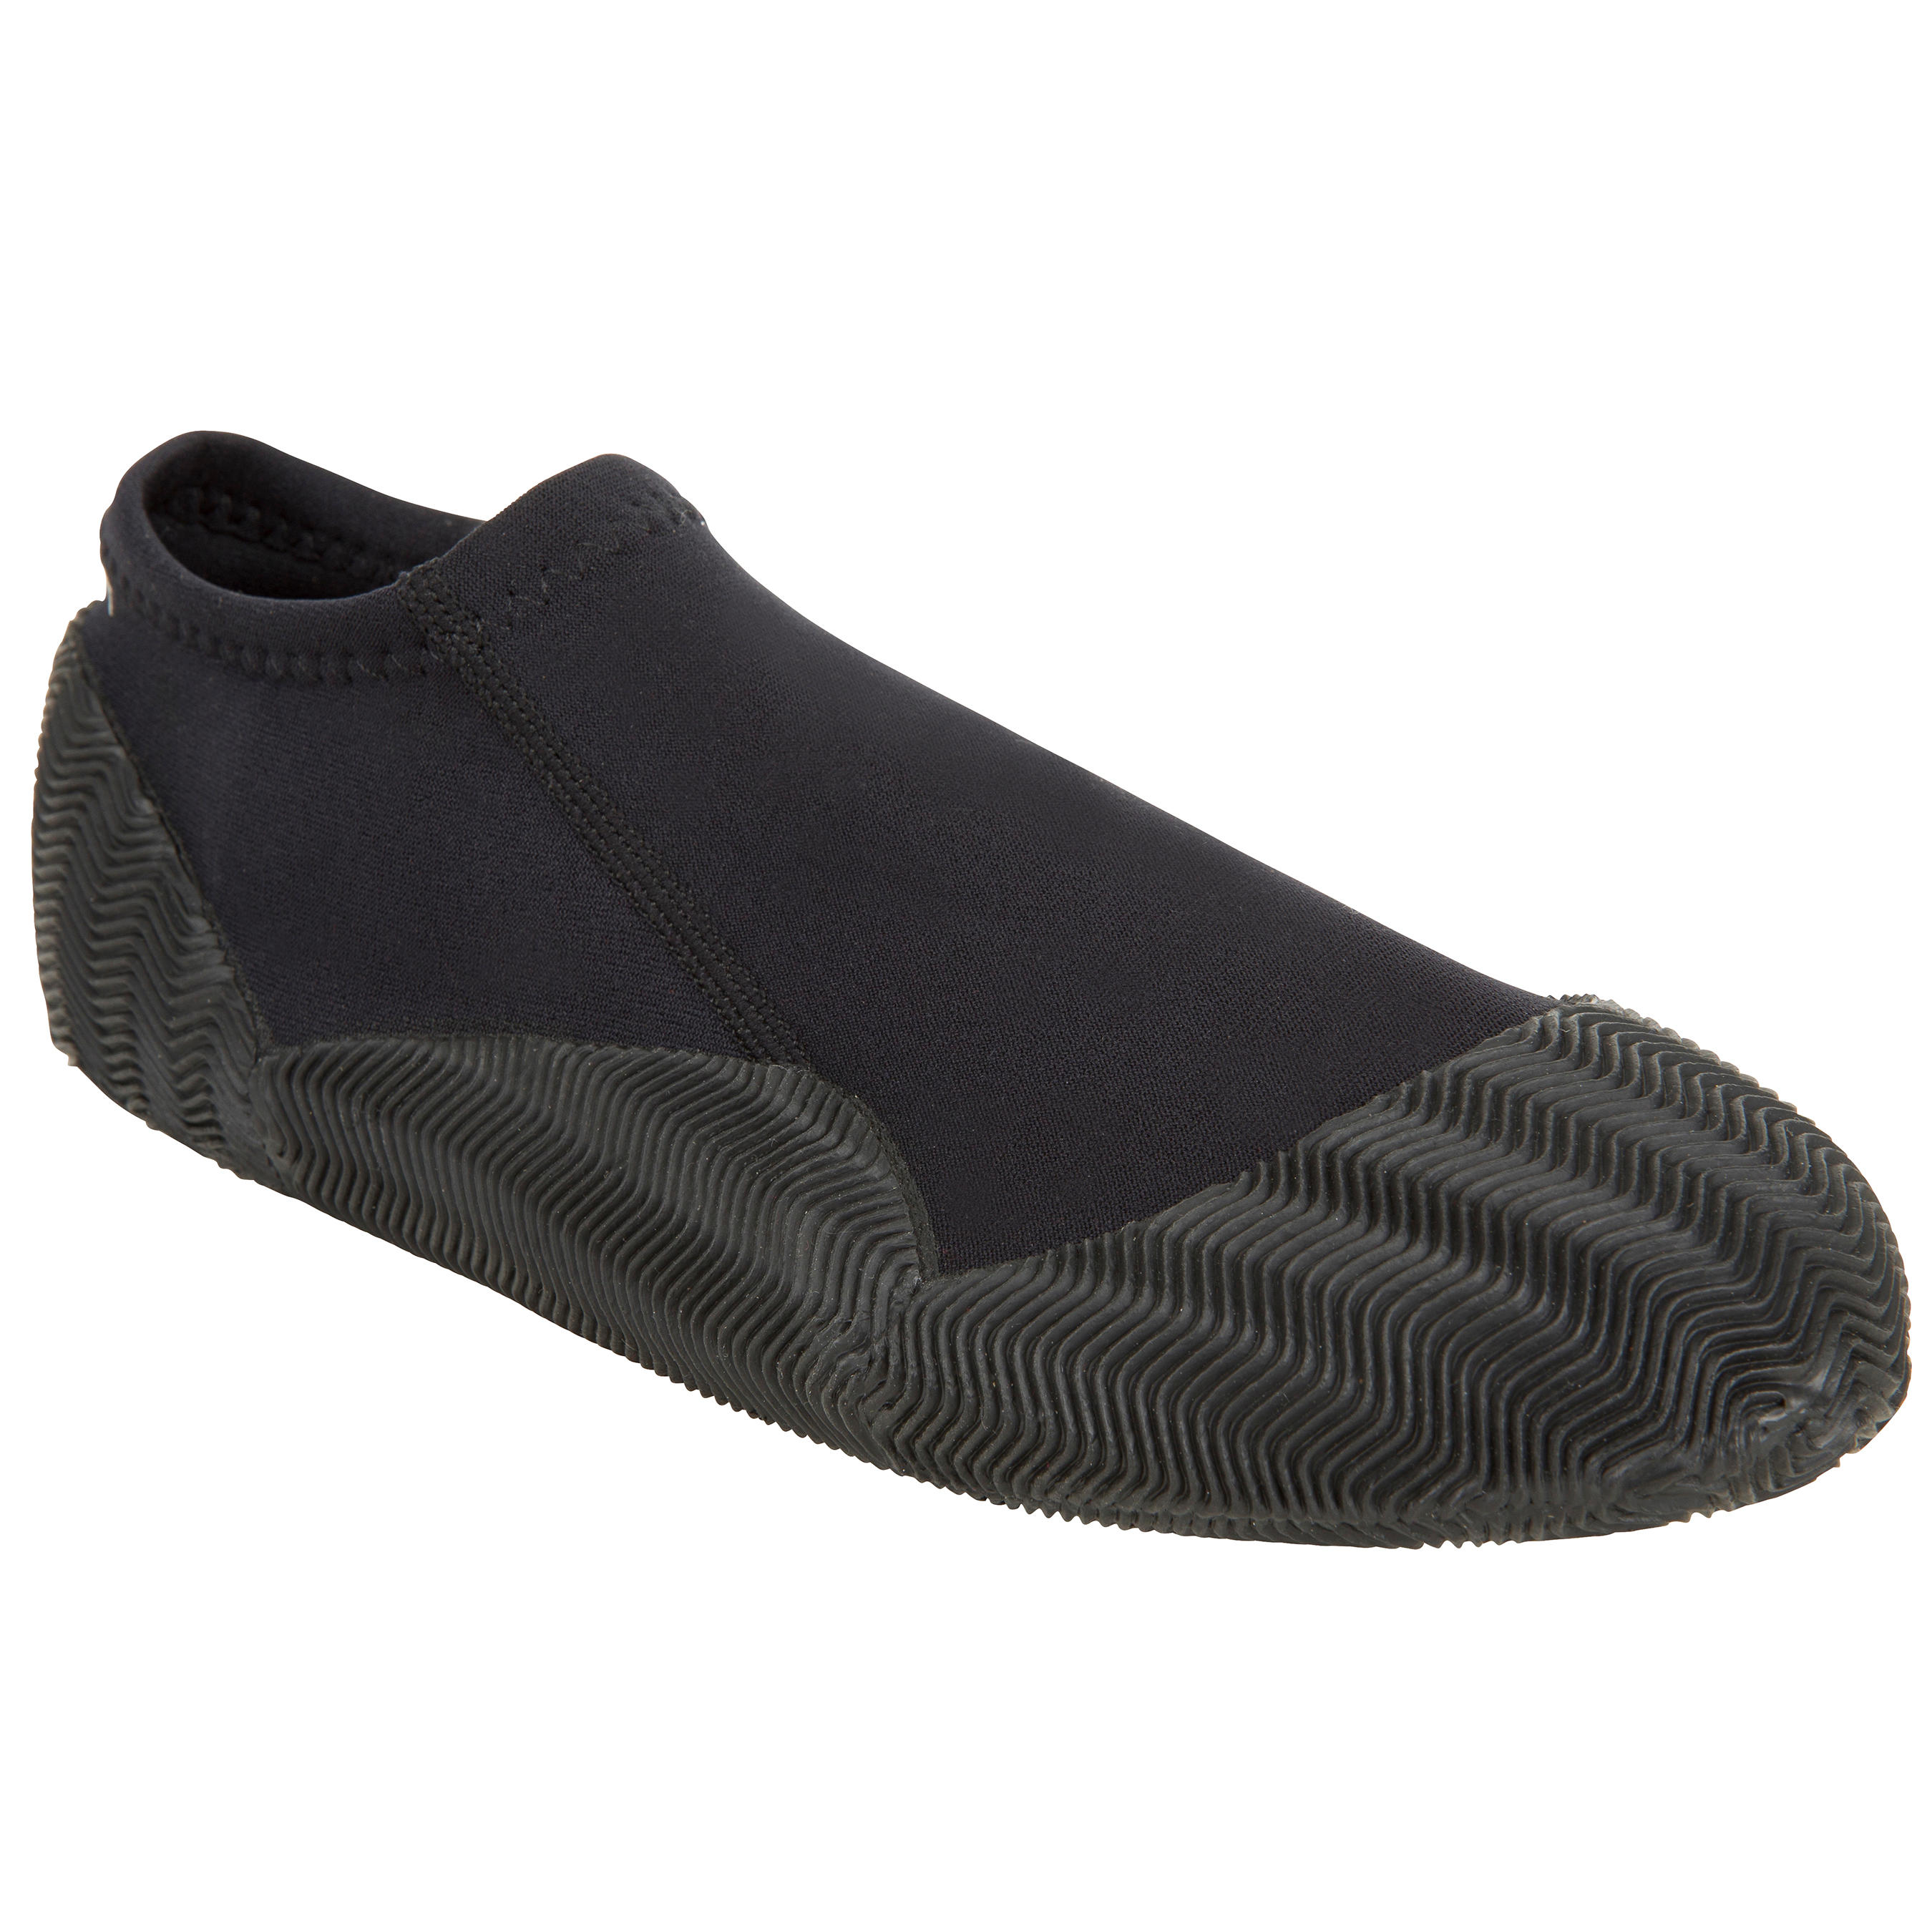 AQUA SHOES SIN SUELA DE KAYAK O STAND-UP PADDLE 100 NEOPRENO 1.5 mm